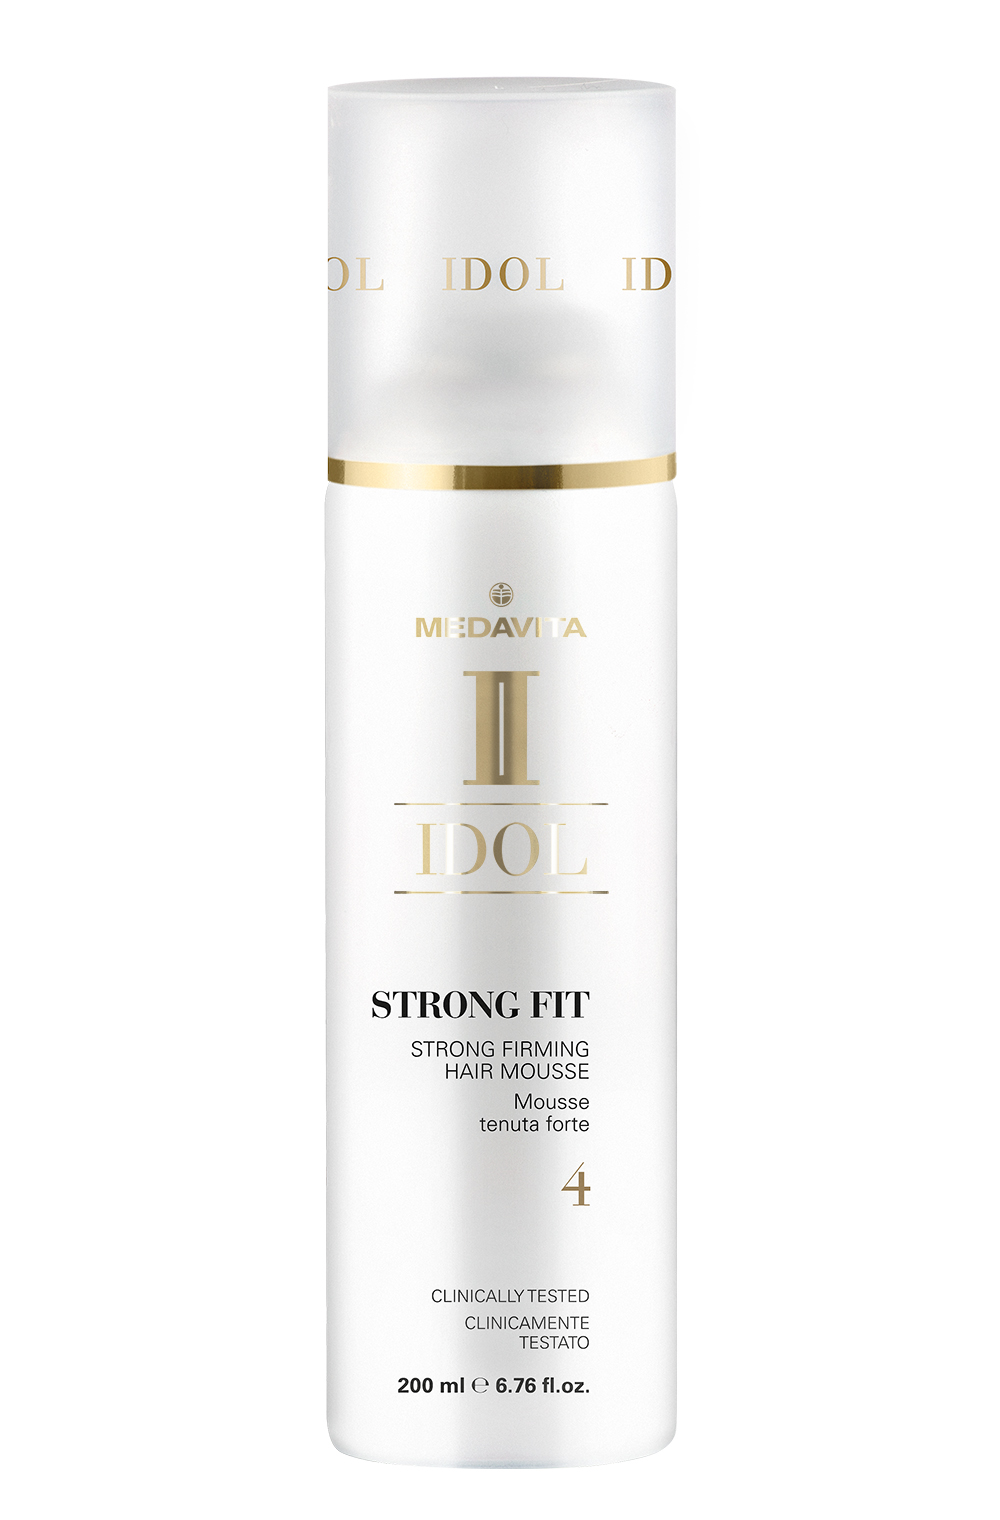 Strong Fit Mousse IDOL 200ml_03-klein